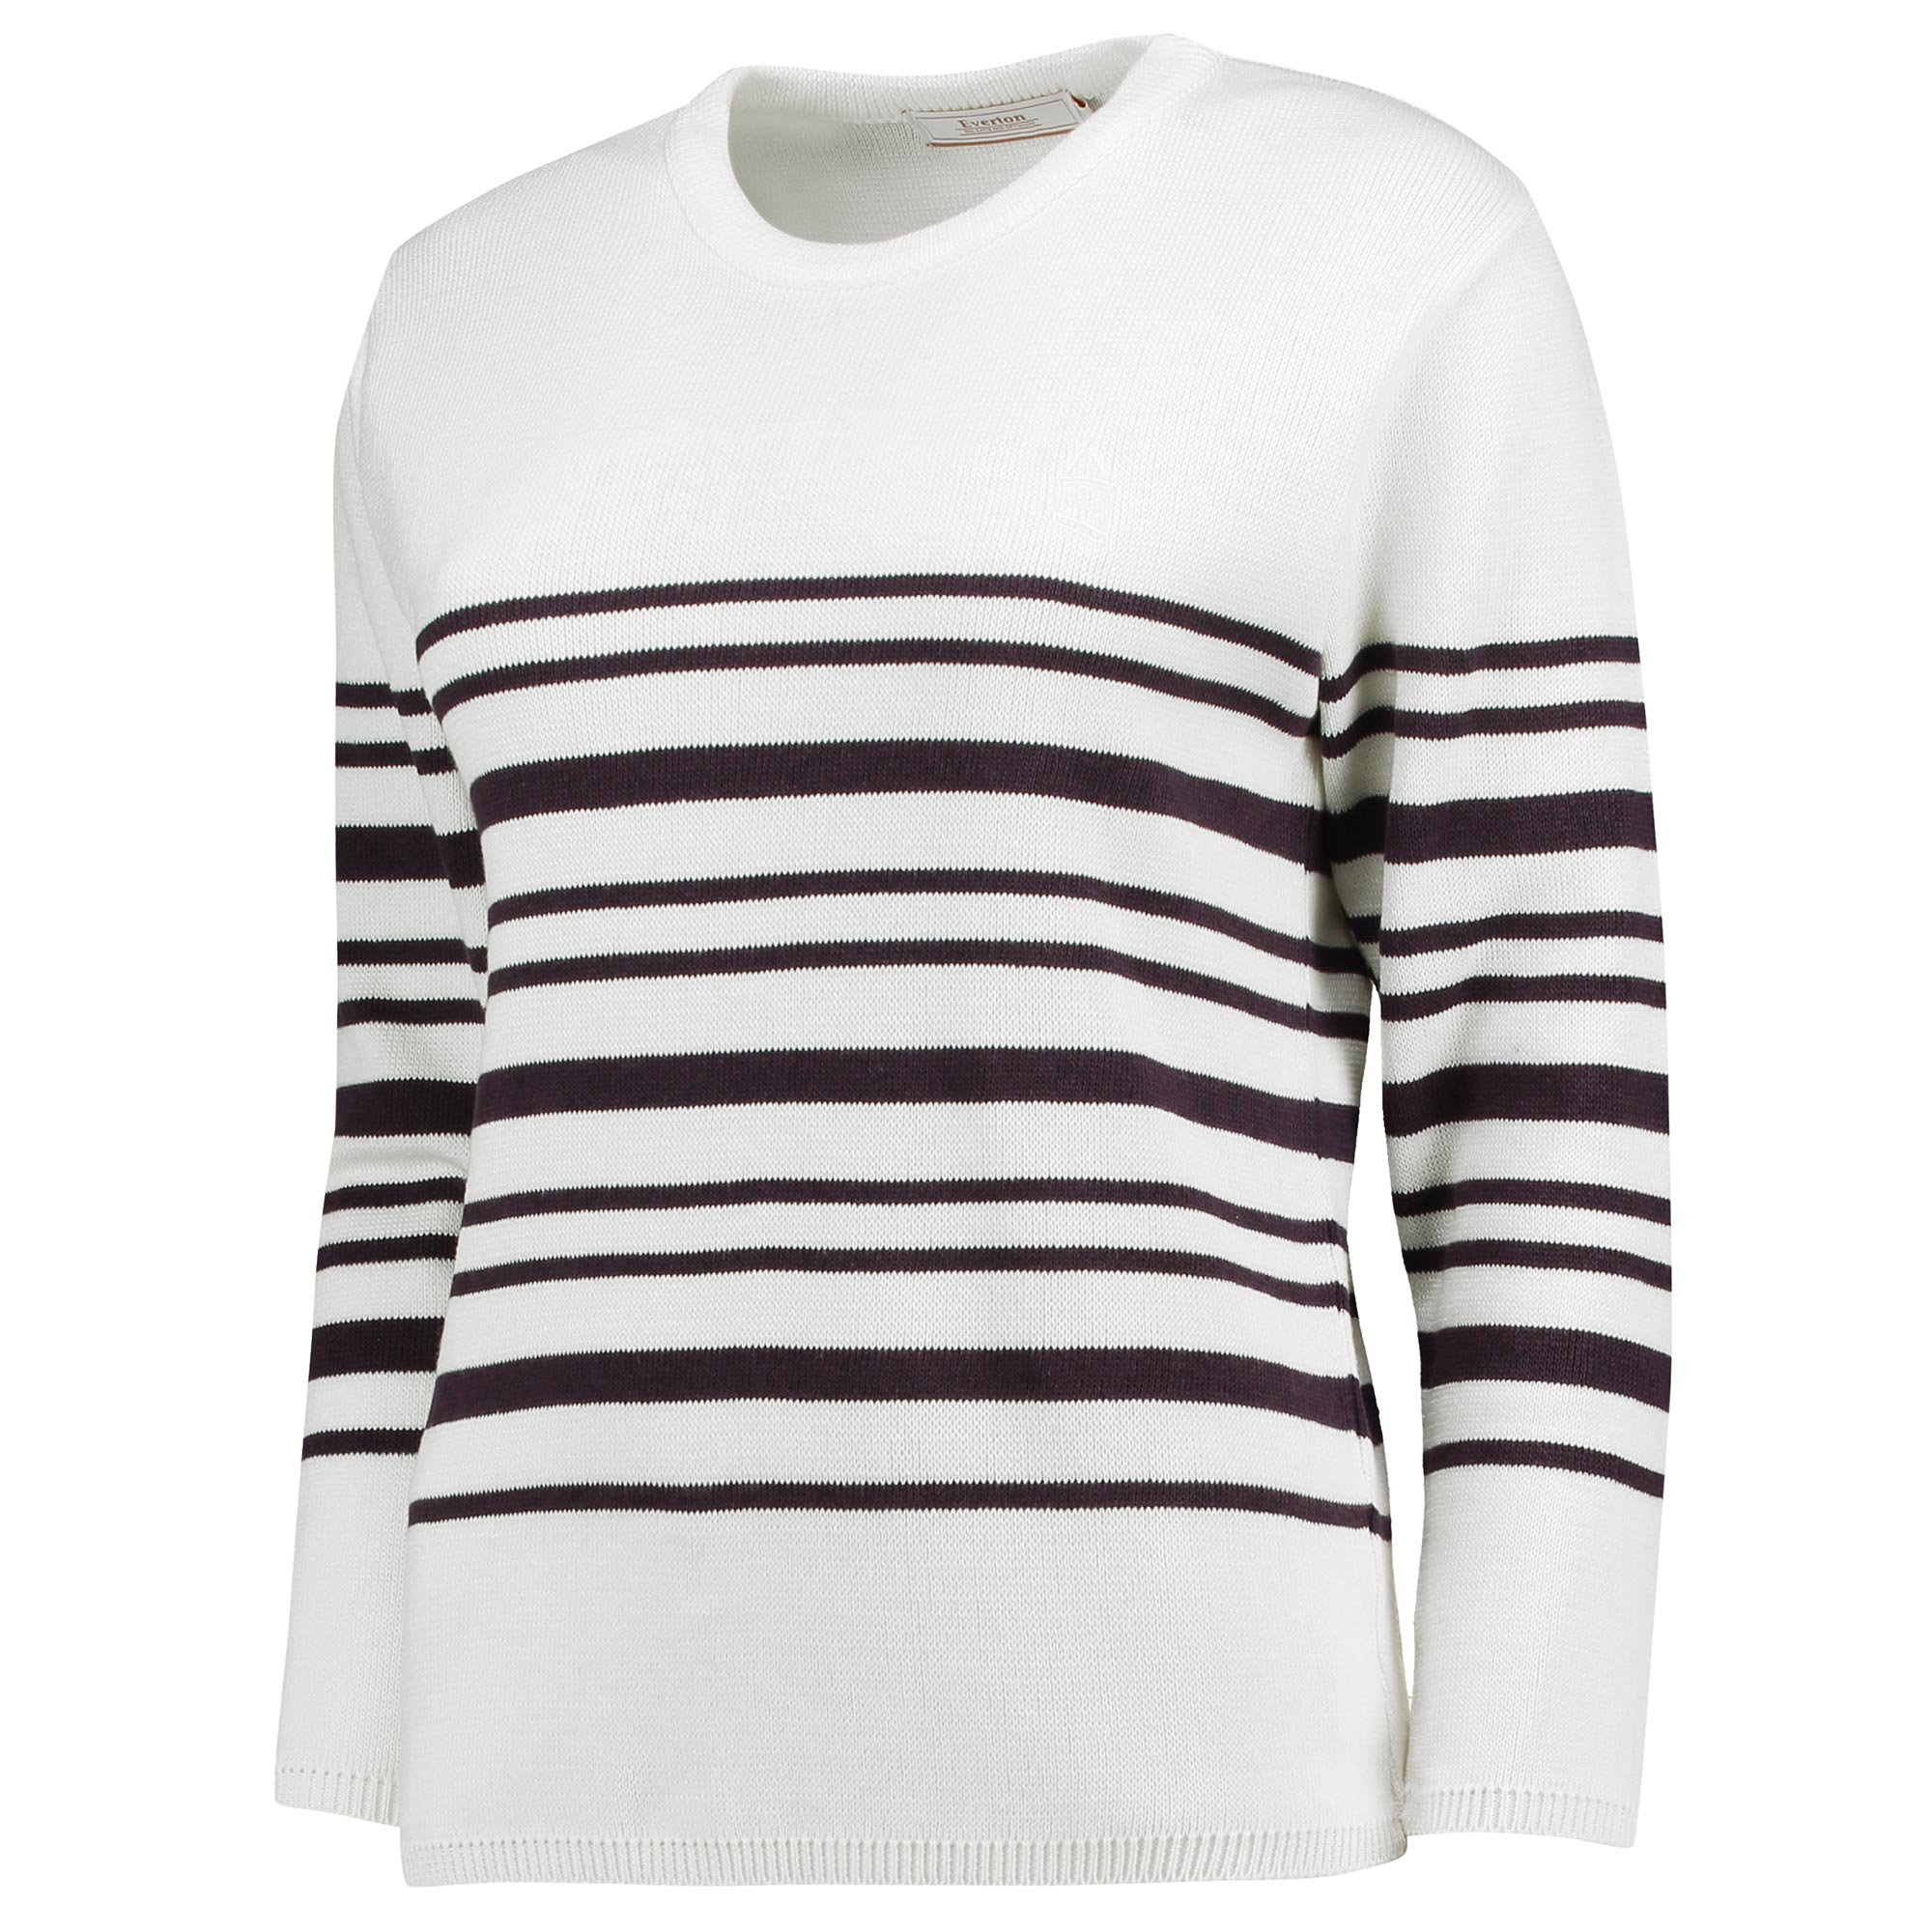 Everton Luxe Breton Top - White - Womens